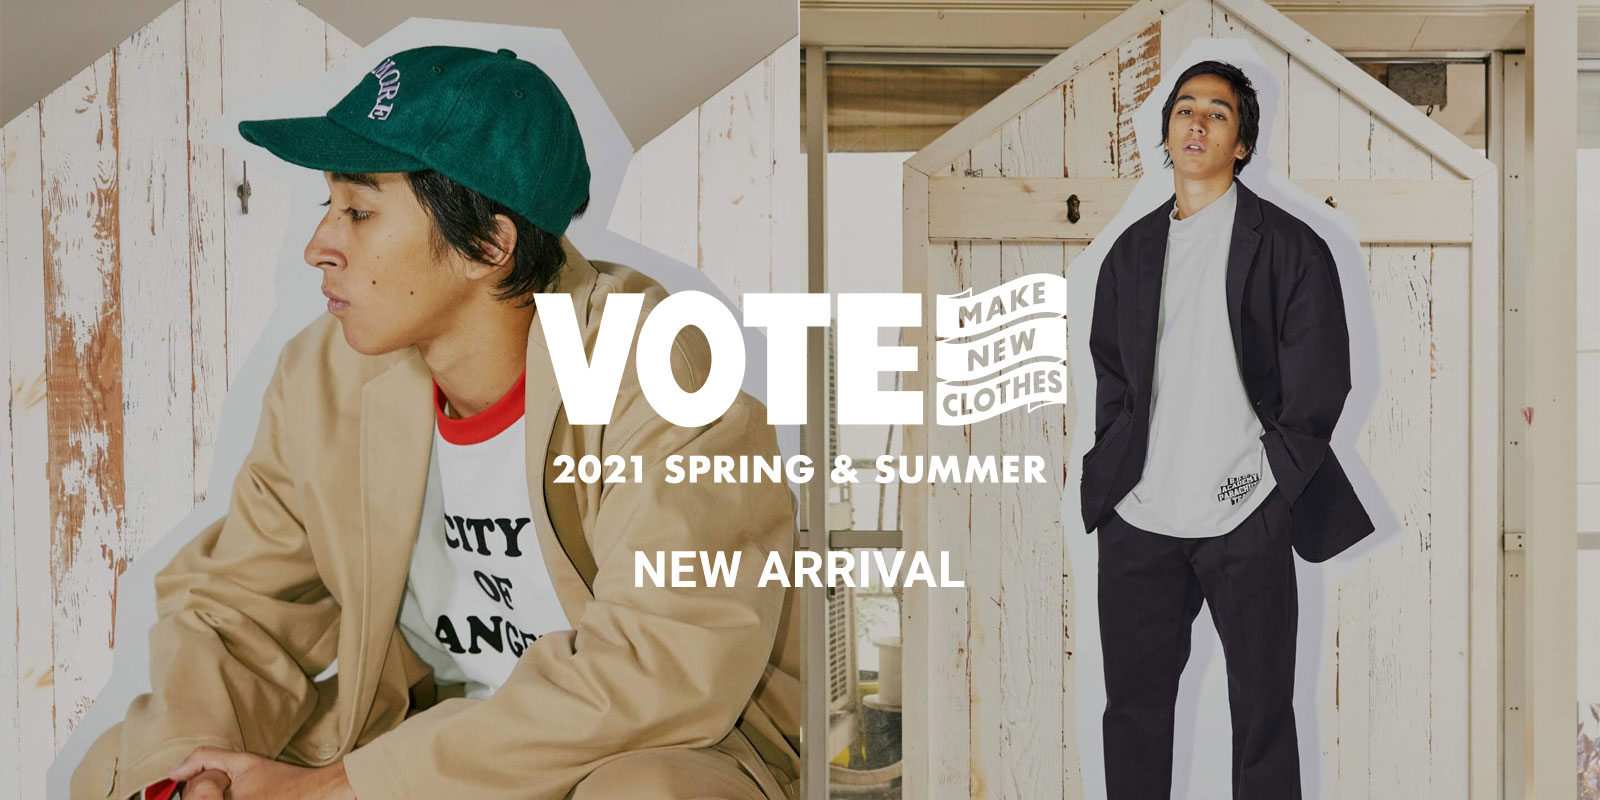 VOTE MAKE NEW CLOTHES